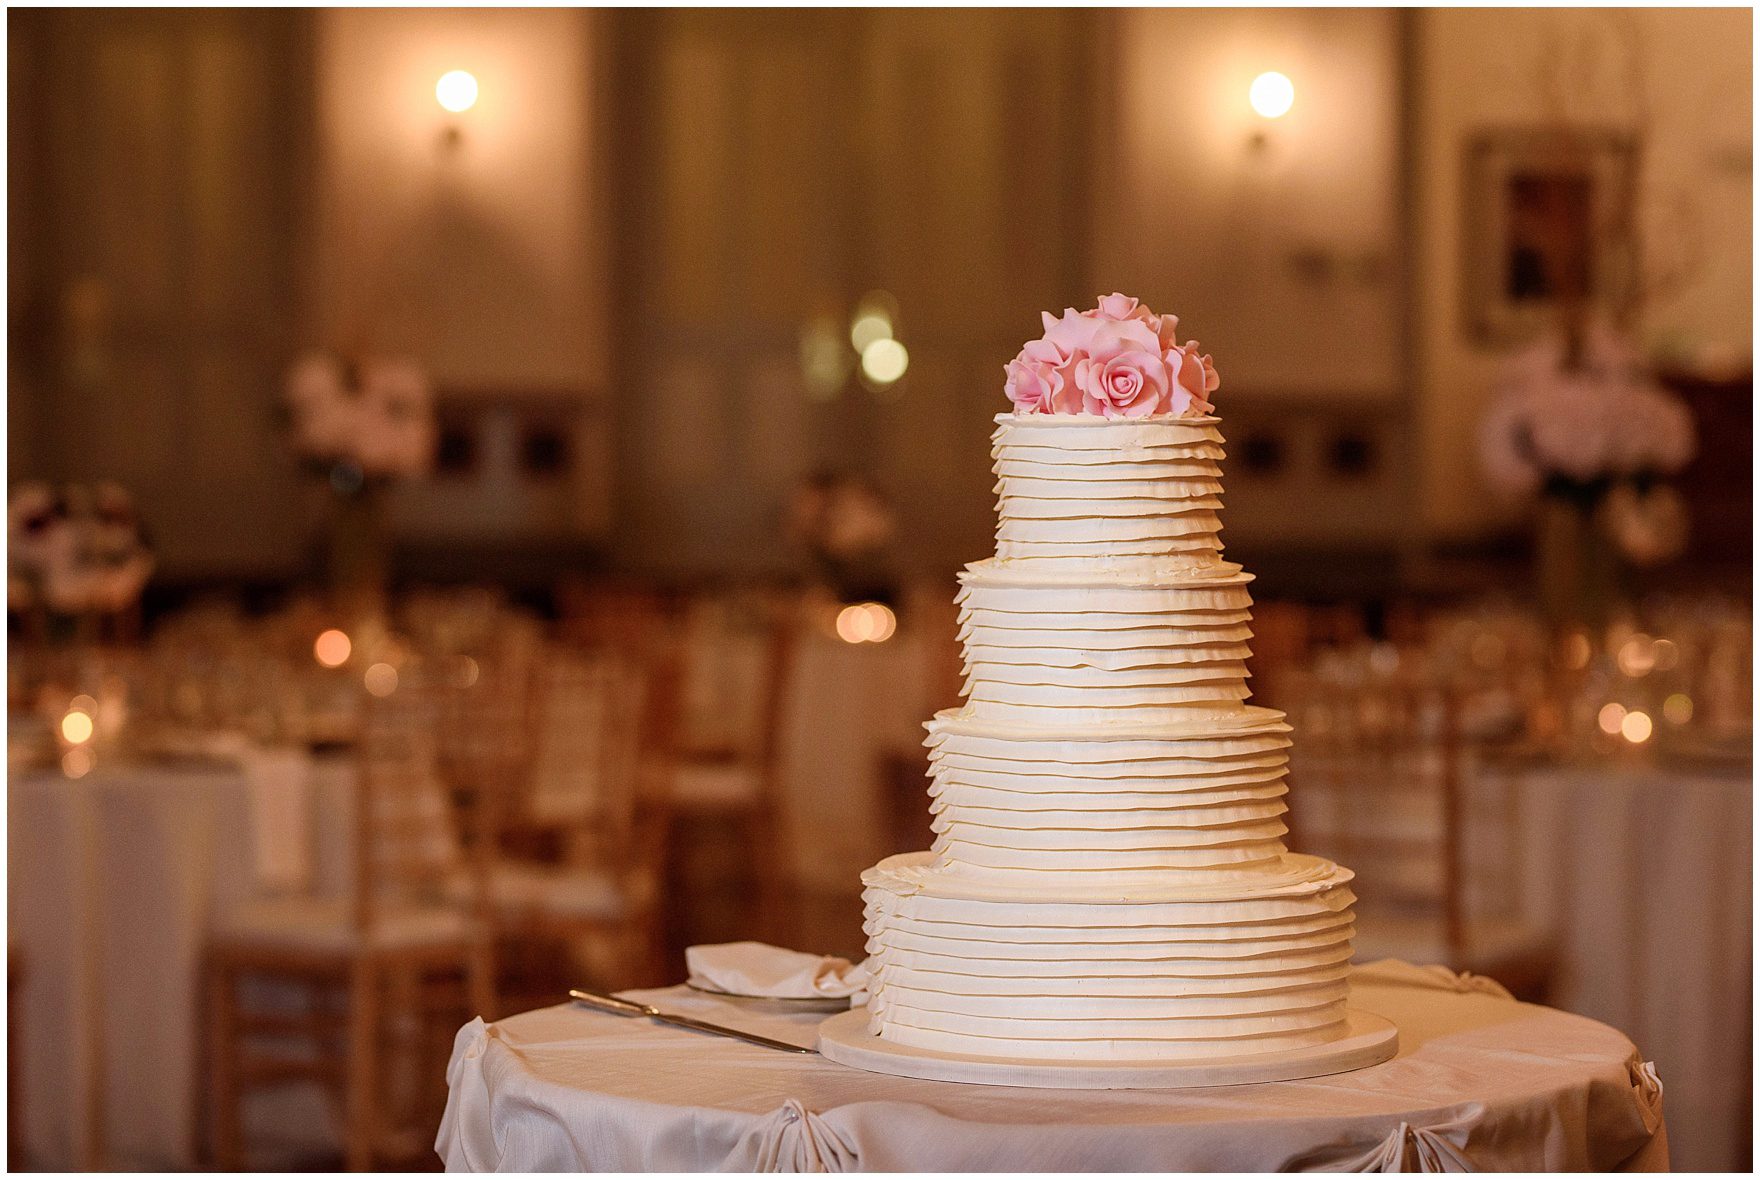 An elegant tiered wedding cake by Oak Mill Bakery during a St. Clement Germania Place Chicago wedding.